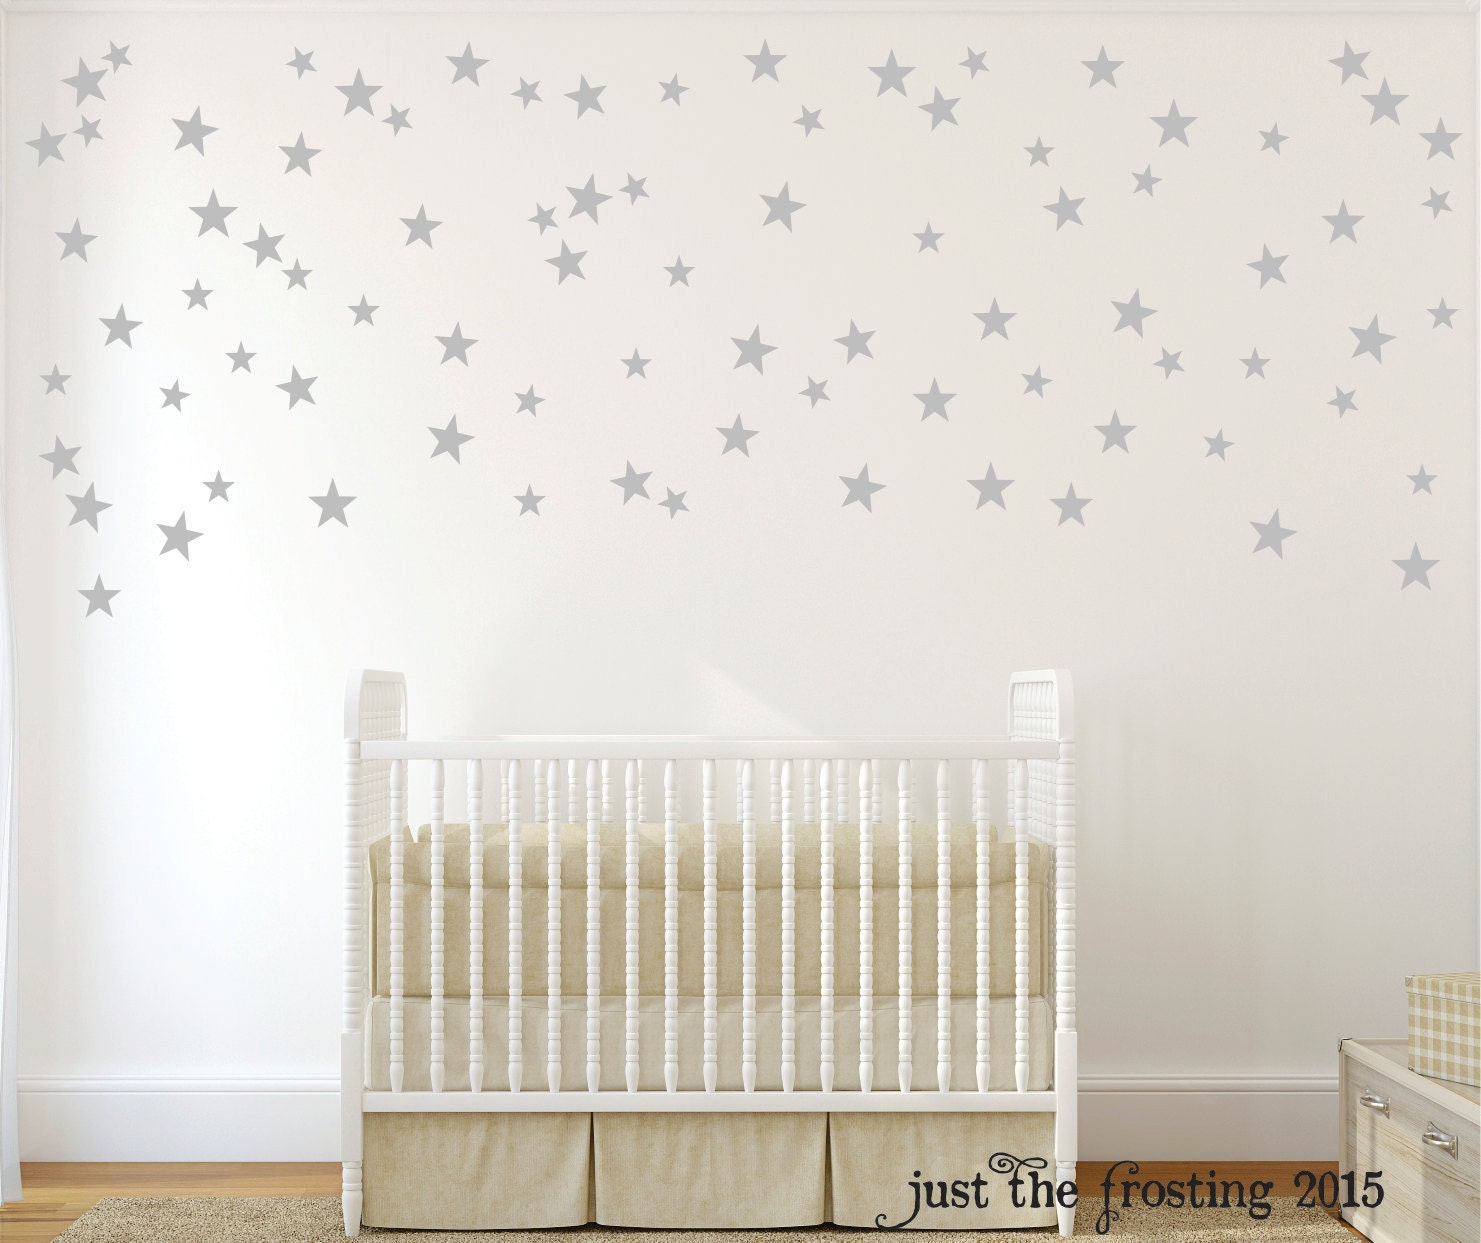 Silver star wall decals confetti star decals set of 140 for Star wall decals